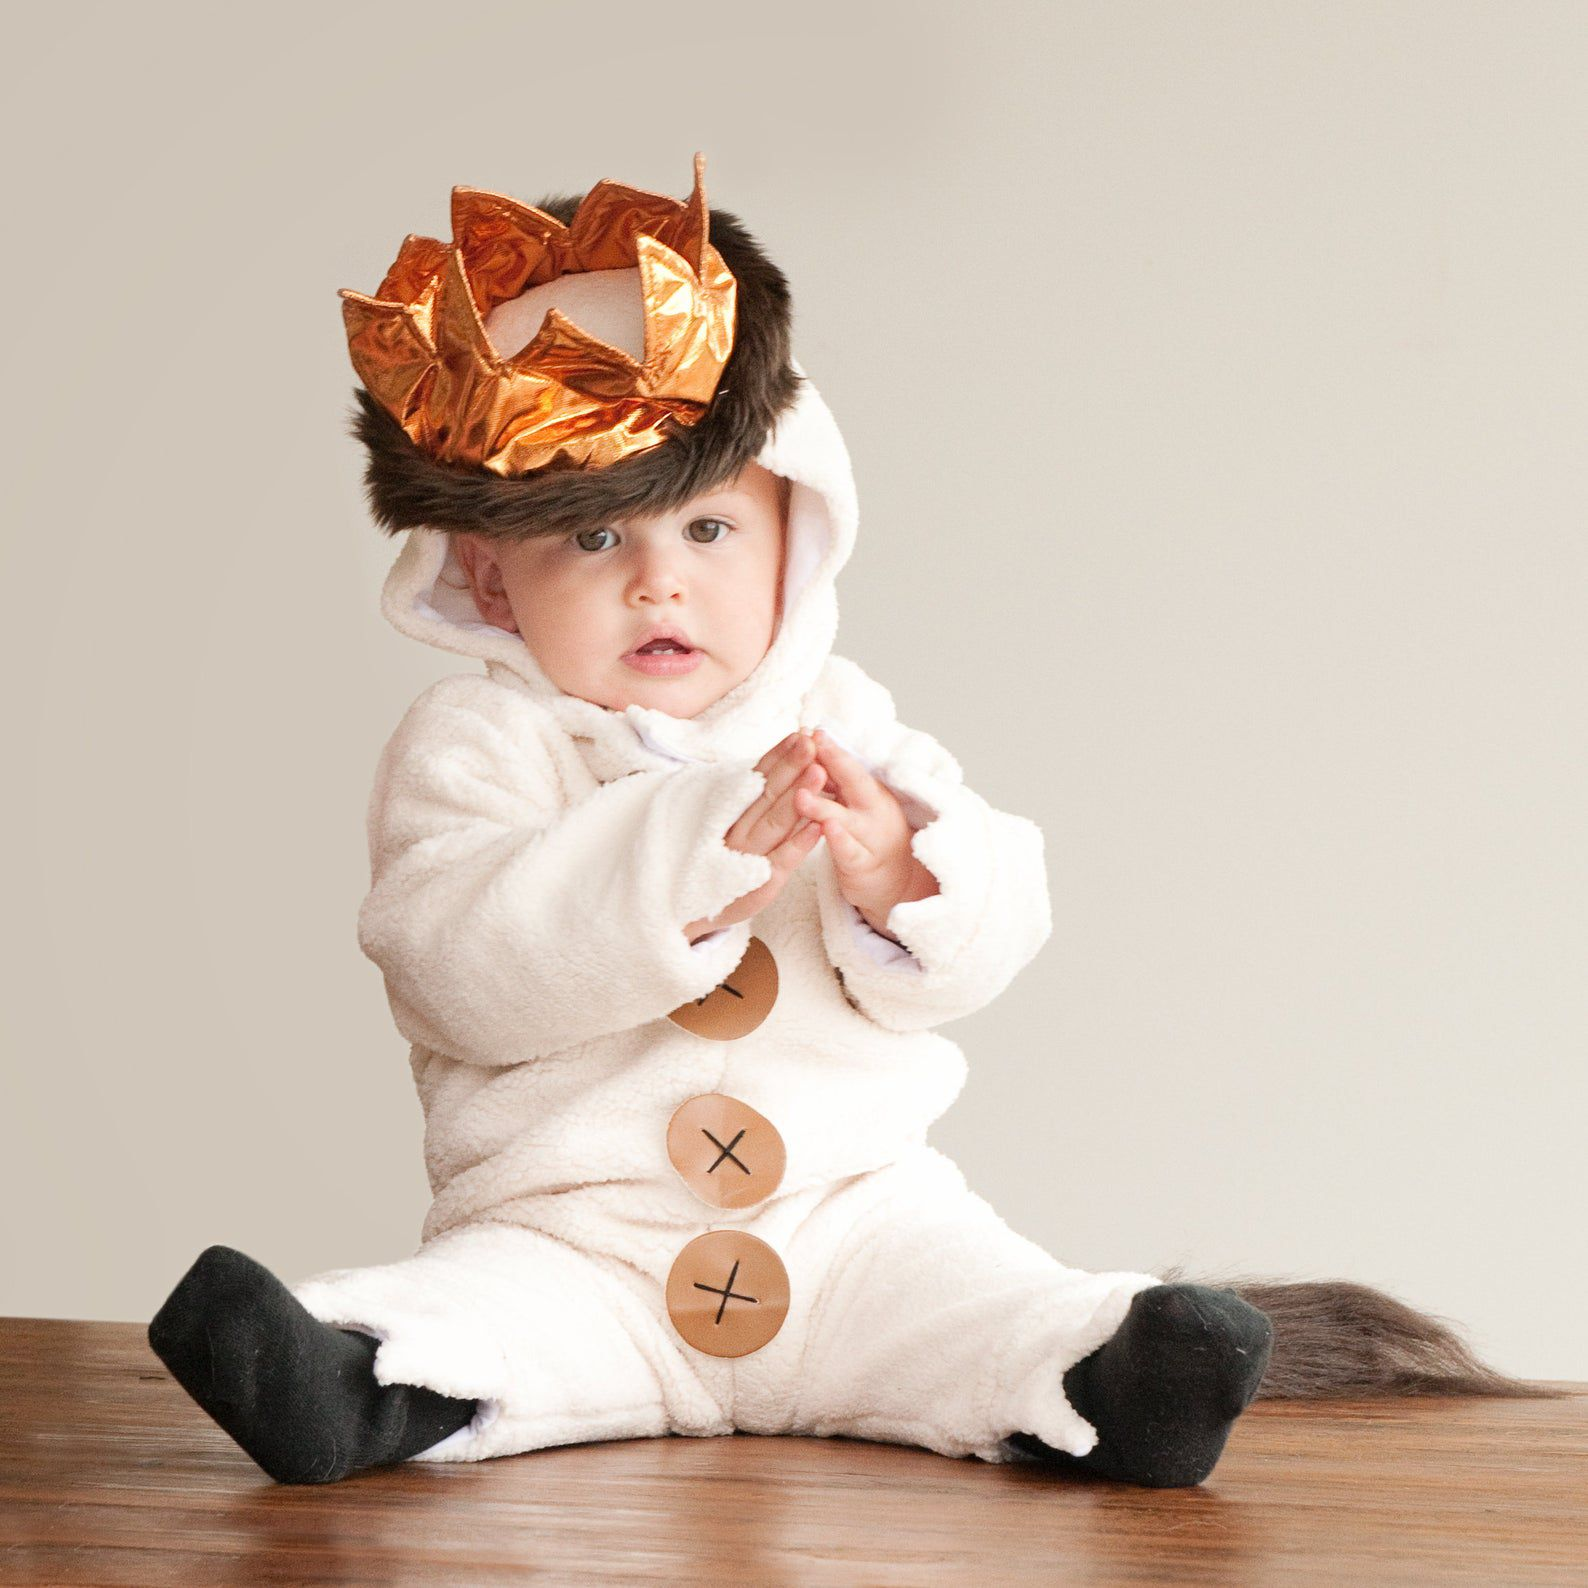 Image of a baby in a Where The Wild Things Are costume